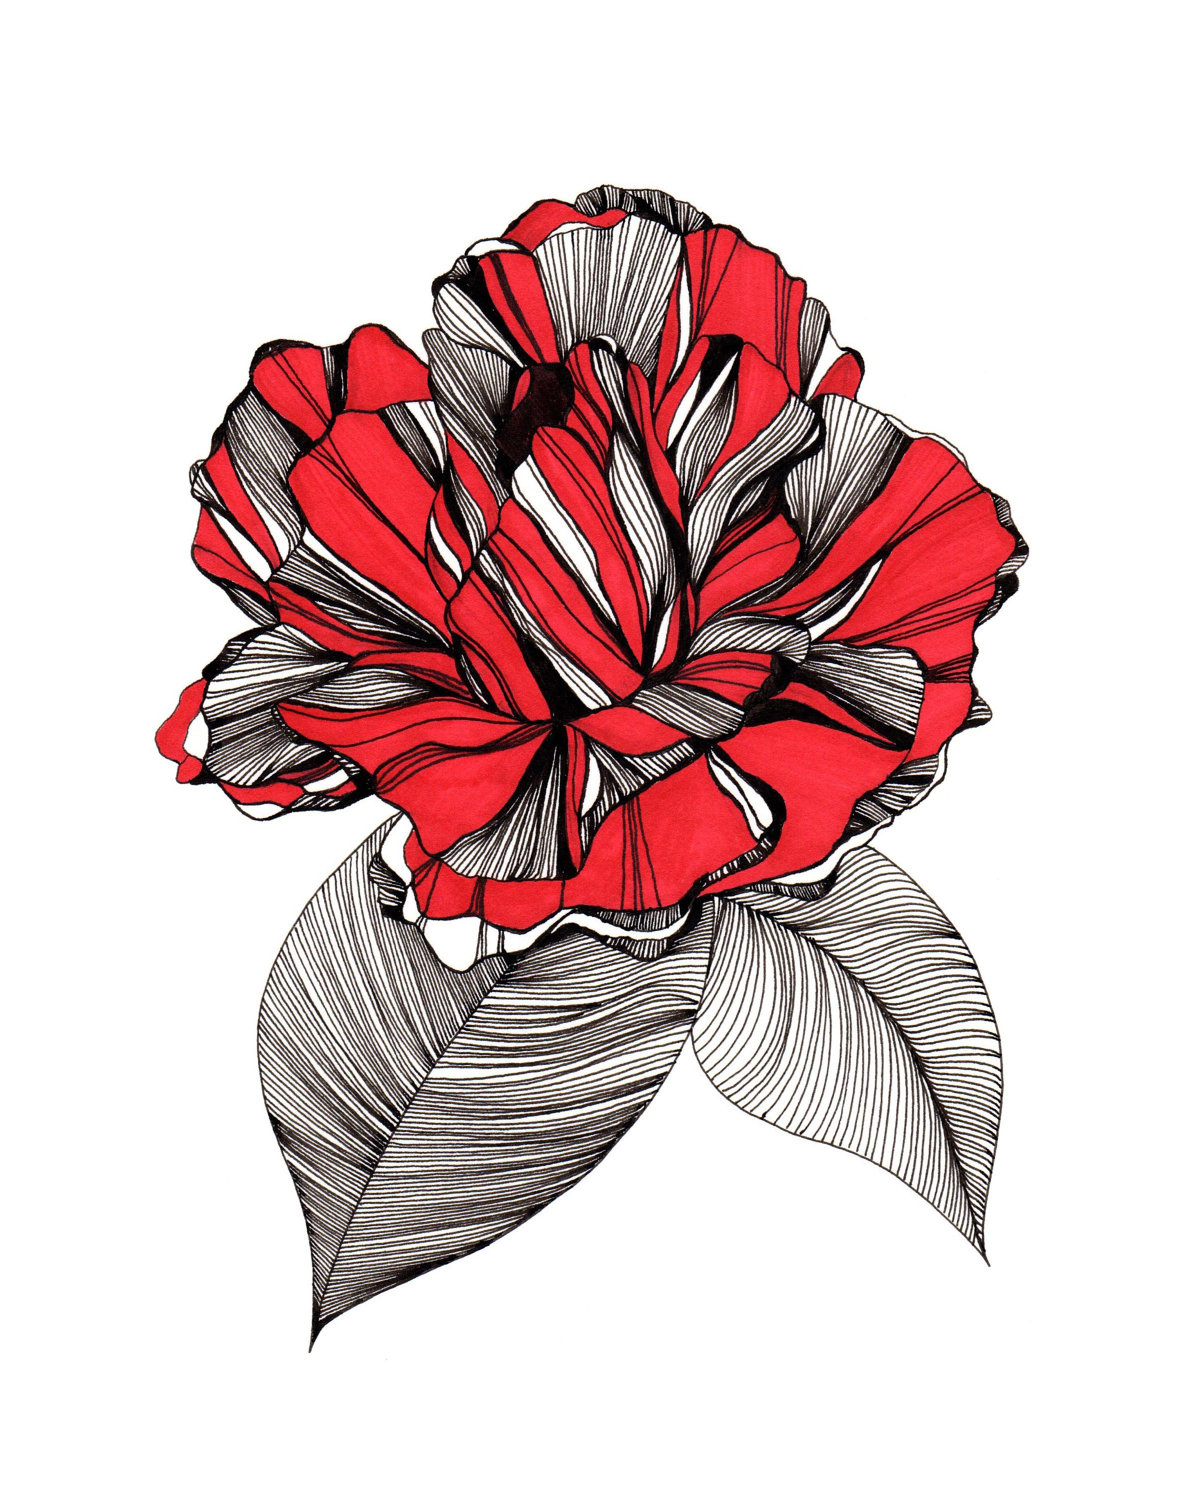 Drawn red rose flower abstract Print Unframed Drawing Drawing Red